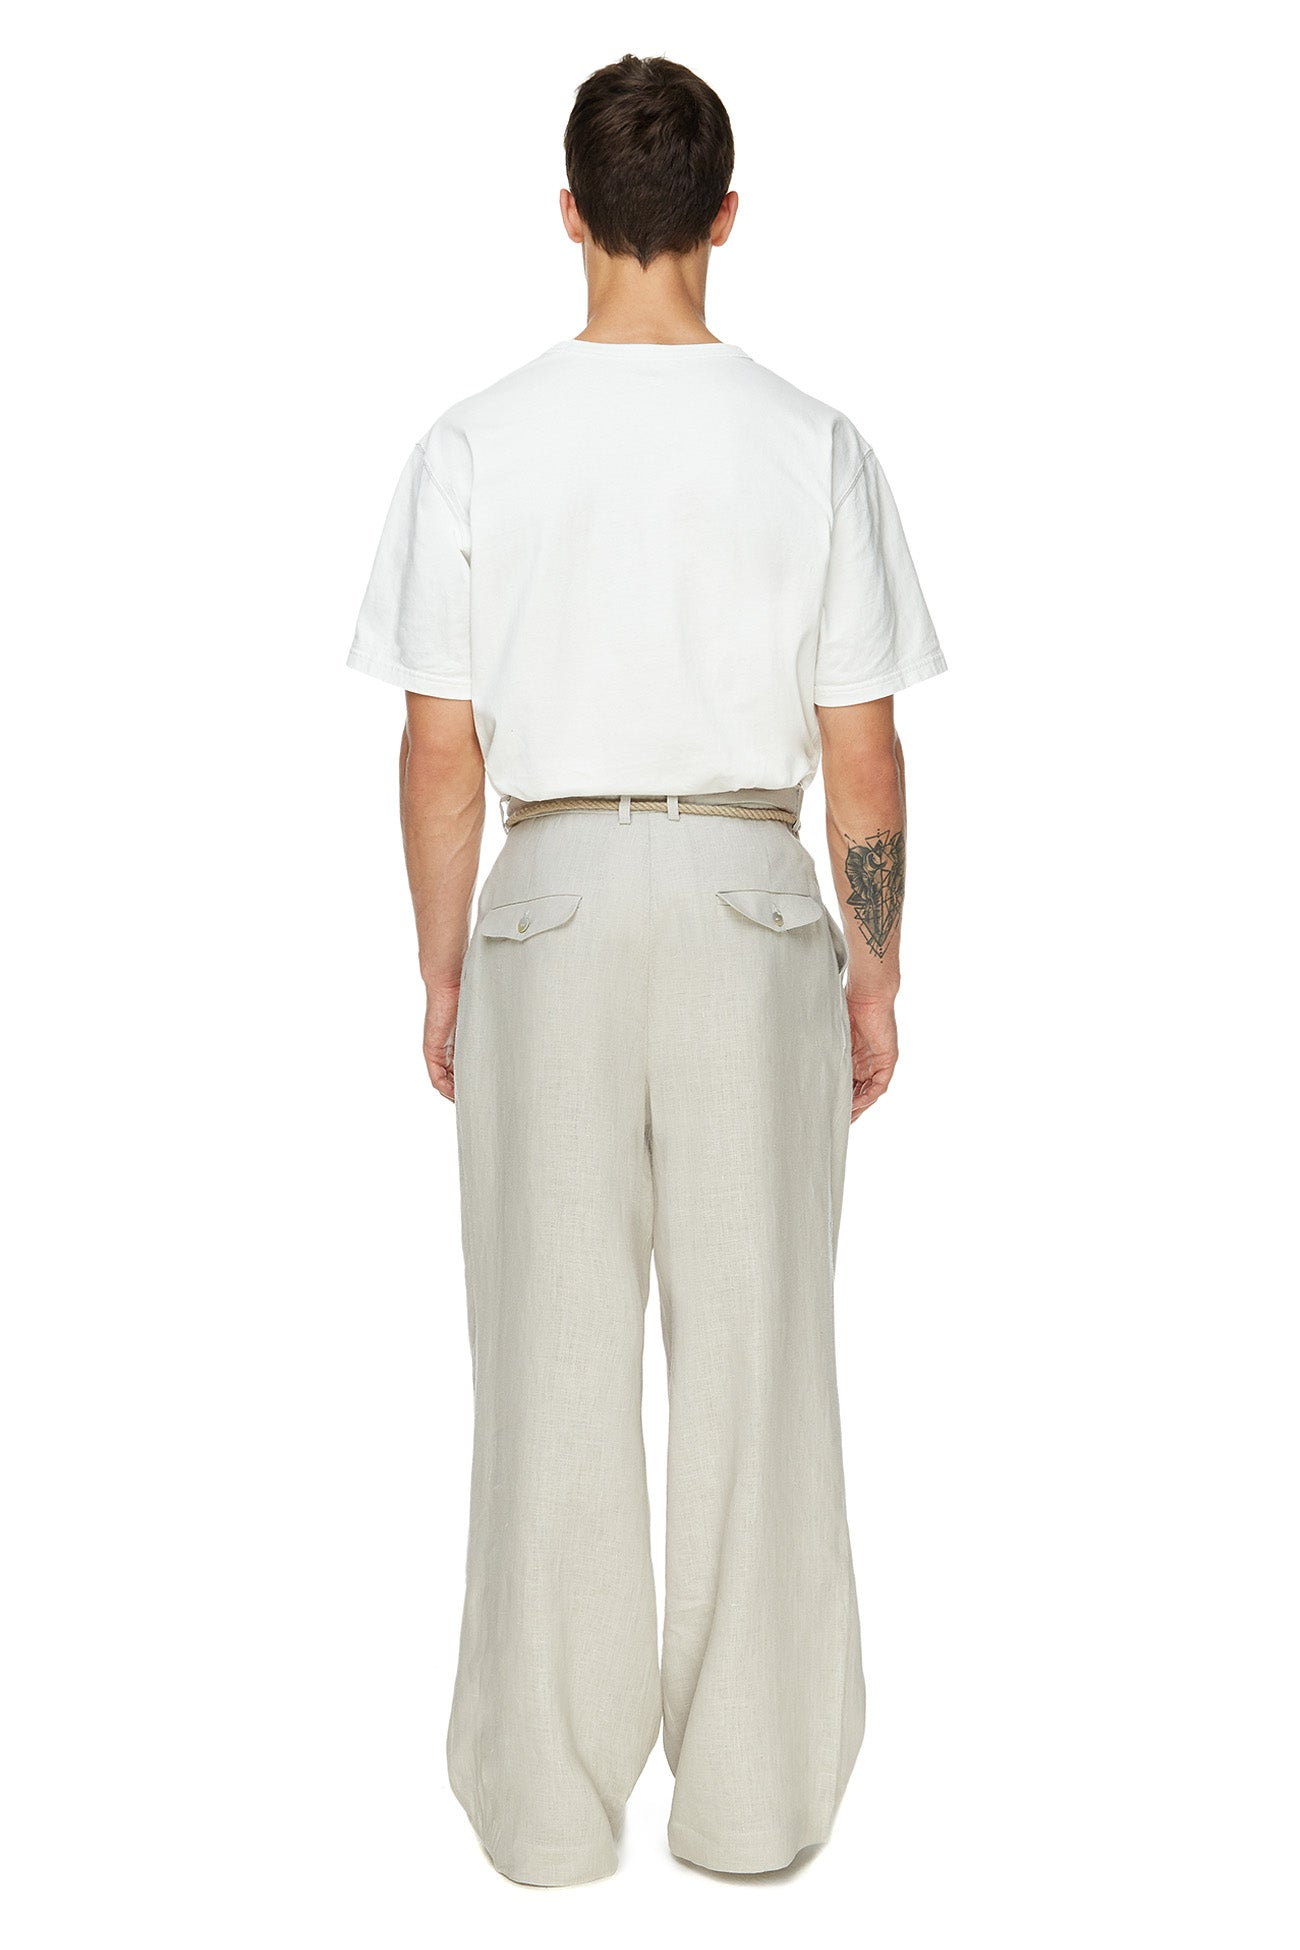 Light gray pants with tucks